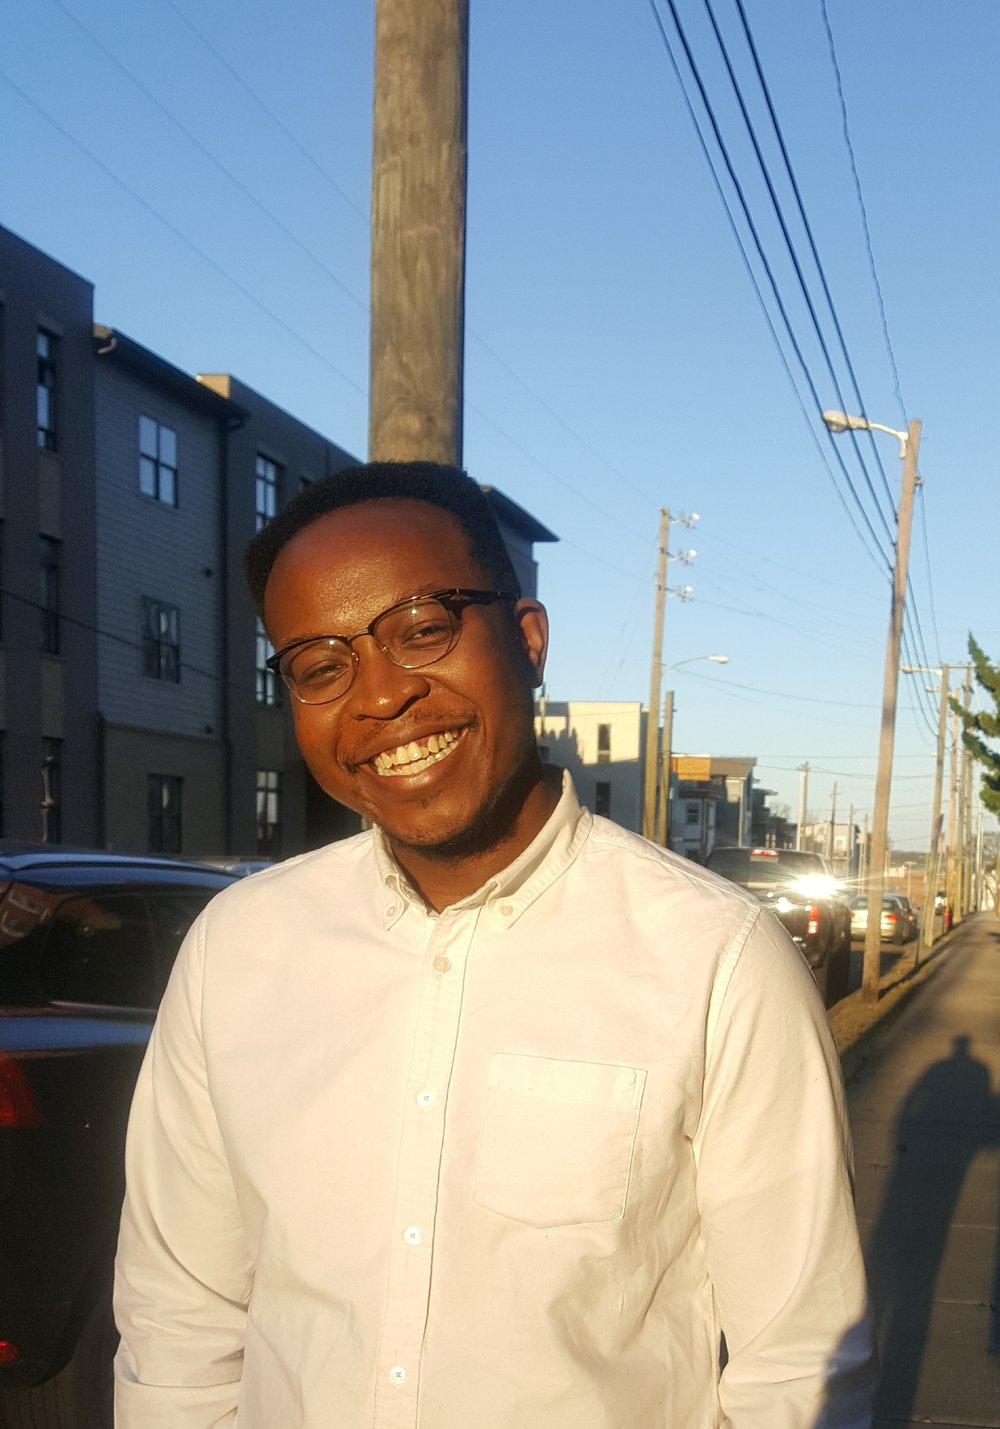 - Olatunde Osinaike is a Nigerian-American poet and software developer originally from the West Side of Chicago.He is the author of the chapbooks Speech Therapy, winner of the 2019 TAR Chapbook Series (forthcoming) and The New Knew (Thirty West Publishing House, 2019). A Best of the Net, Bettering American Poetry, and Pushcart Prize nominee, his most recent work has appeared, or is forthcoming, in Best New Poets 2018, RHINO, Prelude, Cosmonauts Avenue, Winter Tangerine, Palette Poetry, and Columbia Poetry Review, among other publications. He is also currently on poetry staff at The Adroit Journal.He received his B.S. in Engineering from Vanderbilt University and is an incoming M.S. candidate in Information Systems at Johns Hopkins University, concentrating in Human-Computer Interaction.Photo Credit: Audrianna Irving